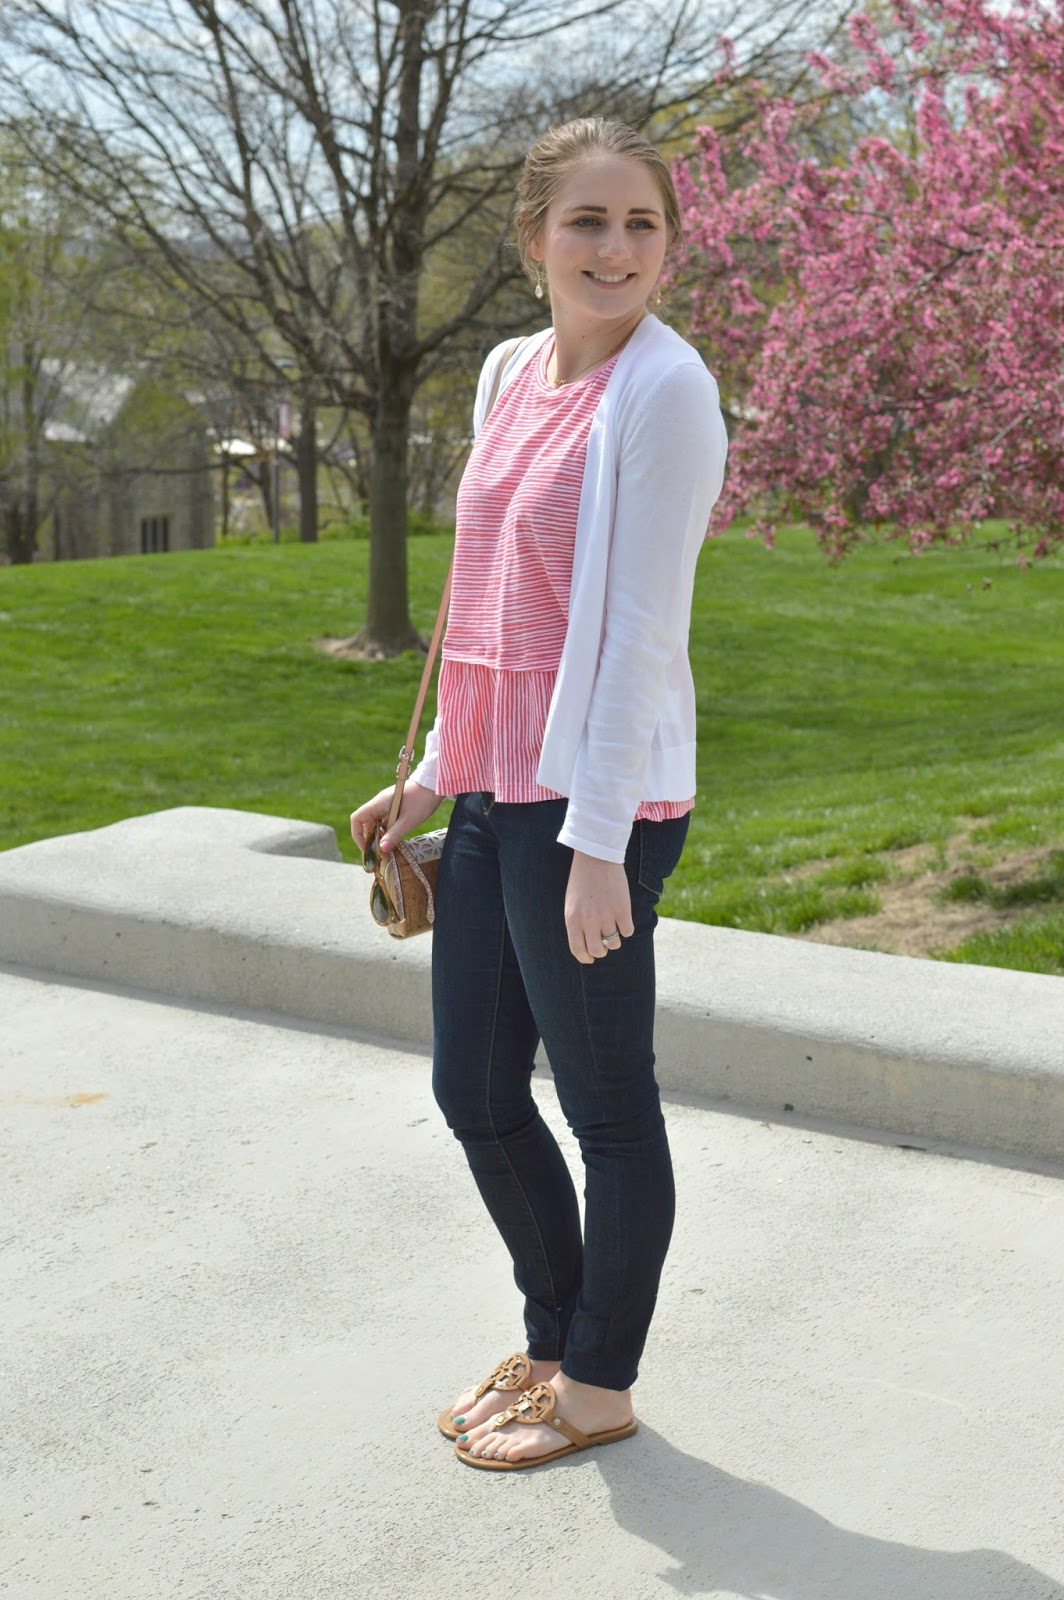 how to style a peplum top | spring outfit ideas | red and white striped top |